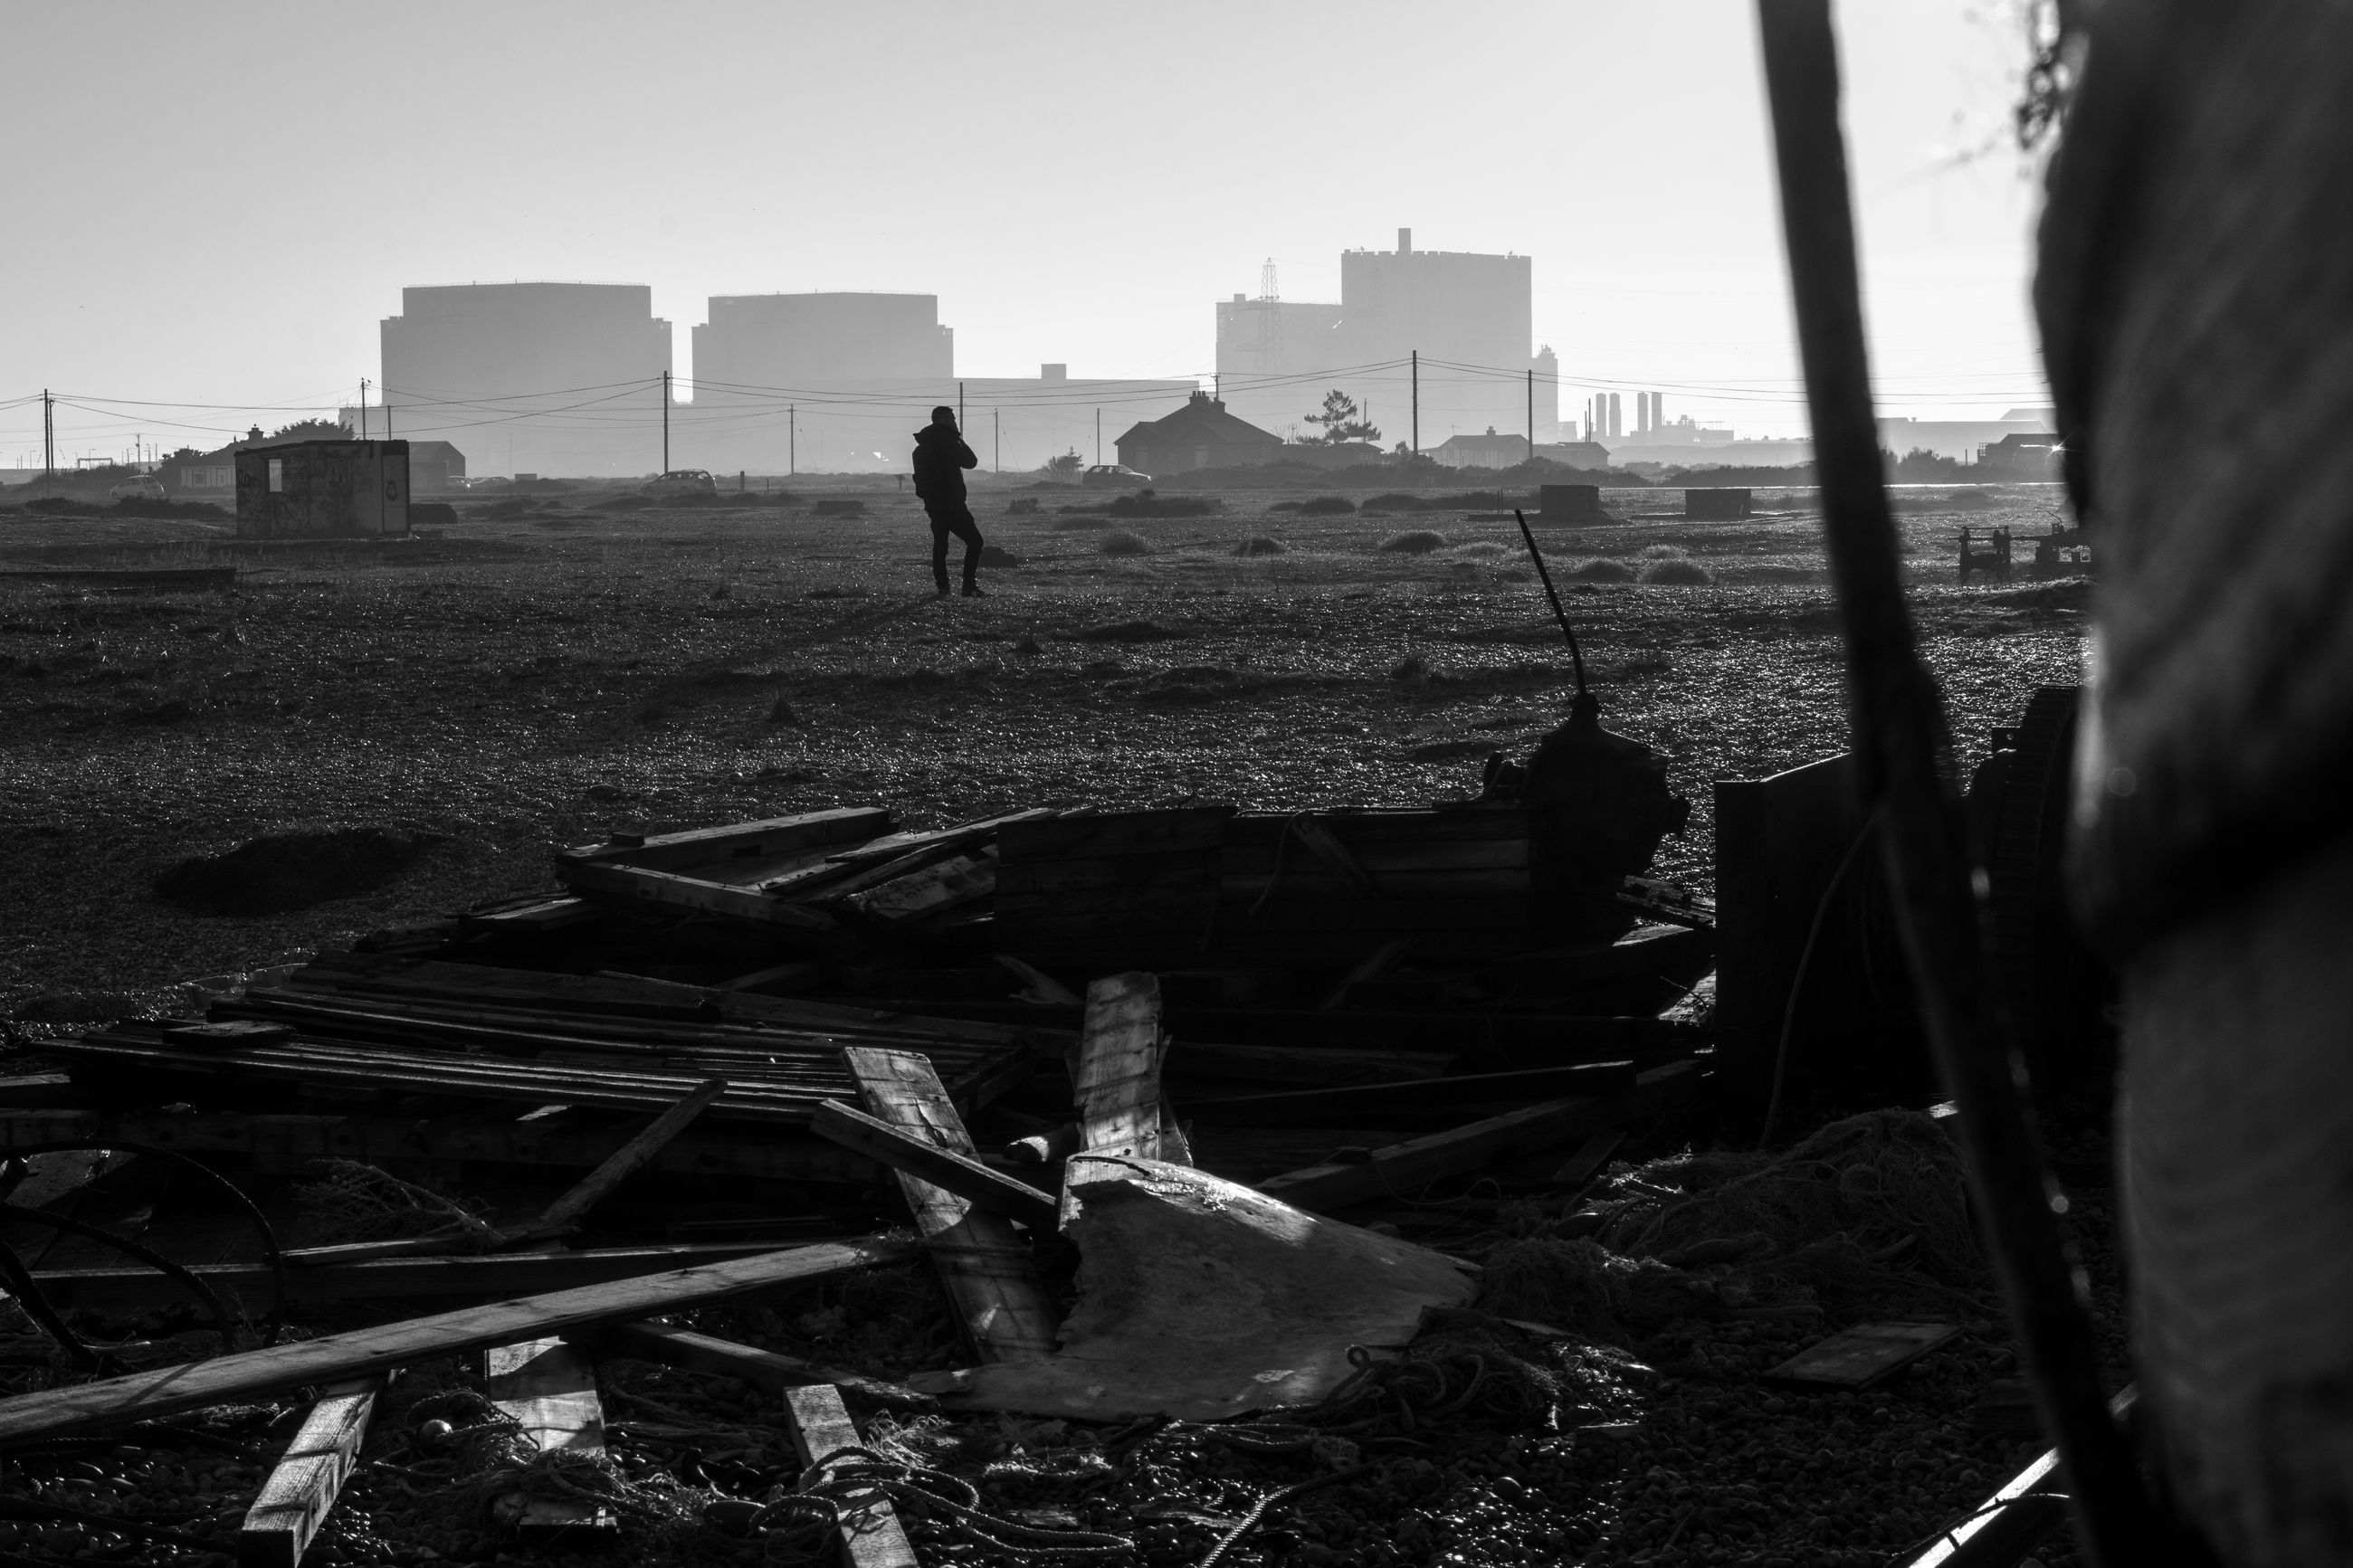 real people, architecture, field, land, built structure, sky, nature, building exterior, one person, day, men, abandoned, outdoors, standing, lifestyles, landscape, building, environment, full length, pollution, ruined